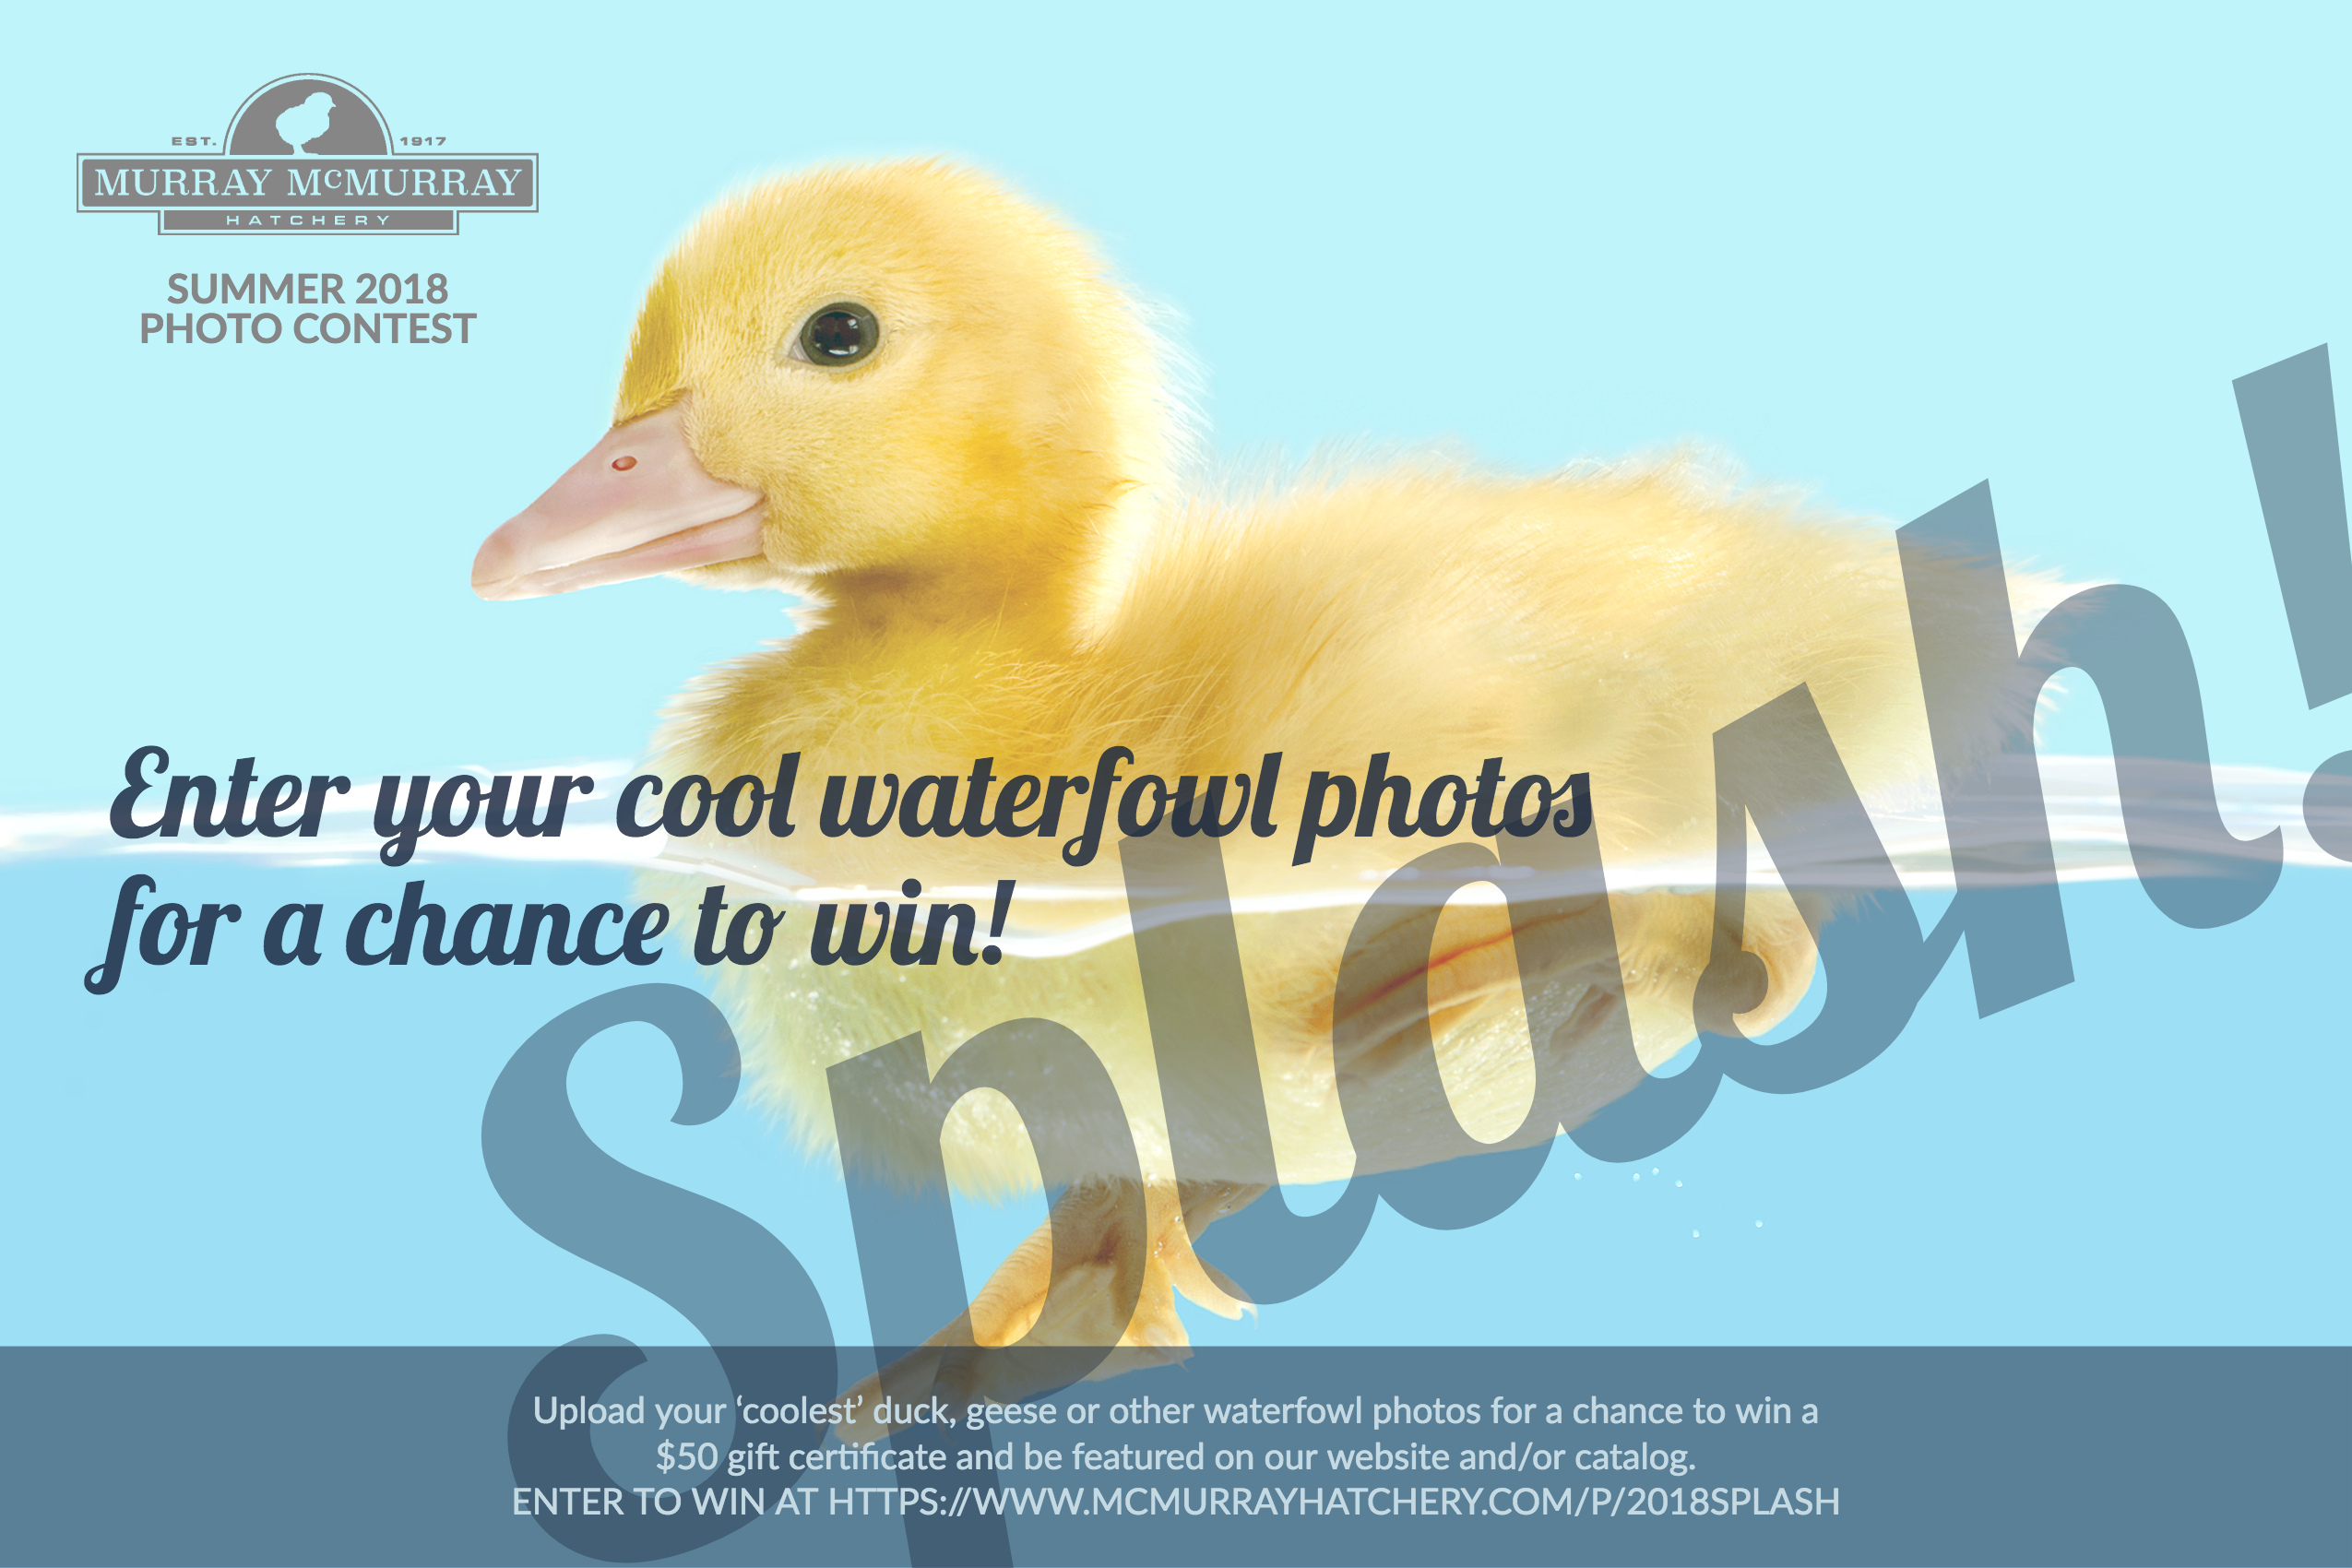 Photo Contest: Make a Splash and Win with Your Waterfowl Photos